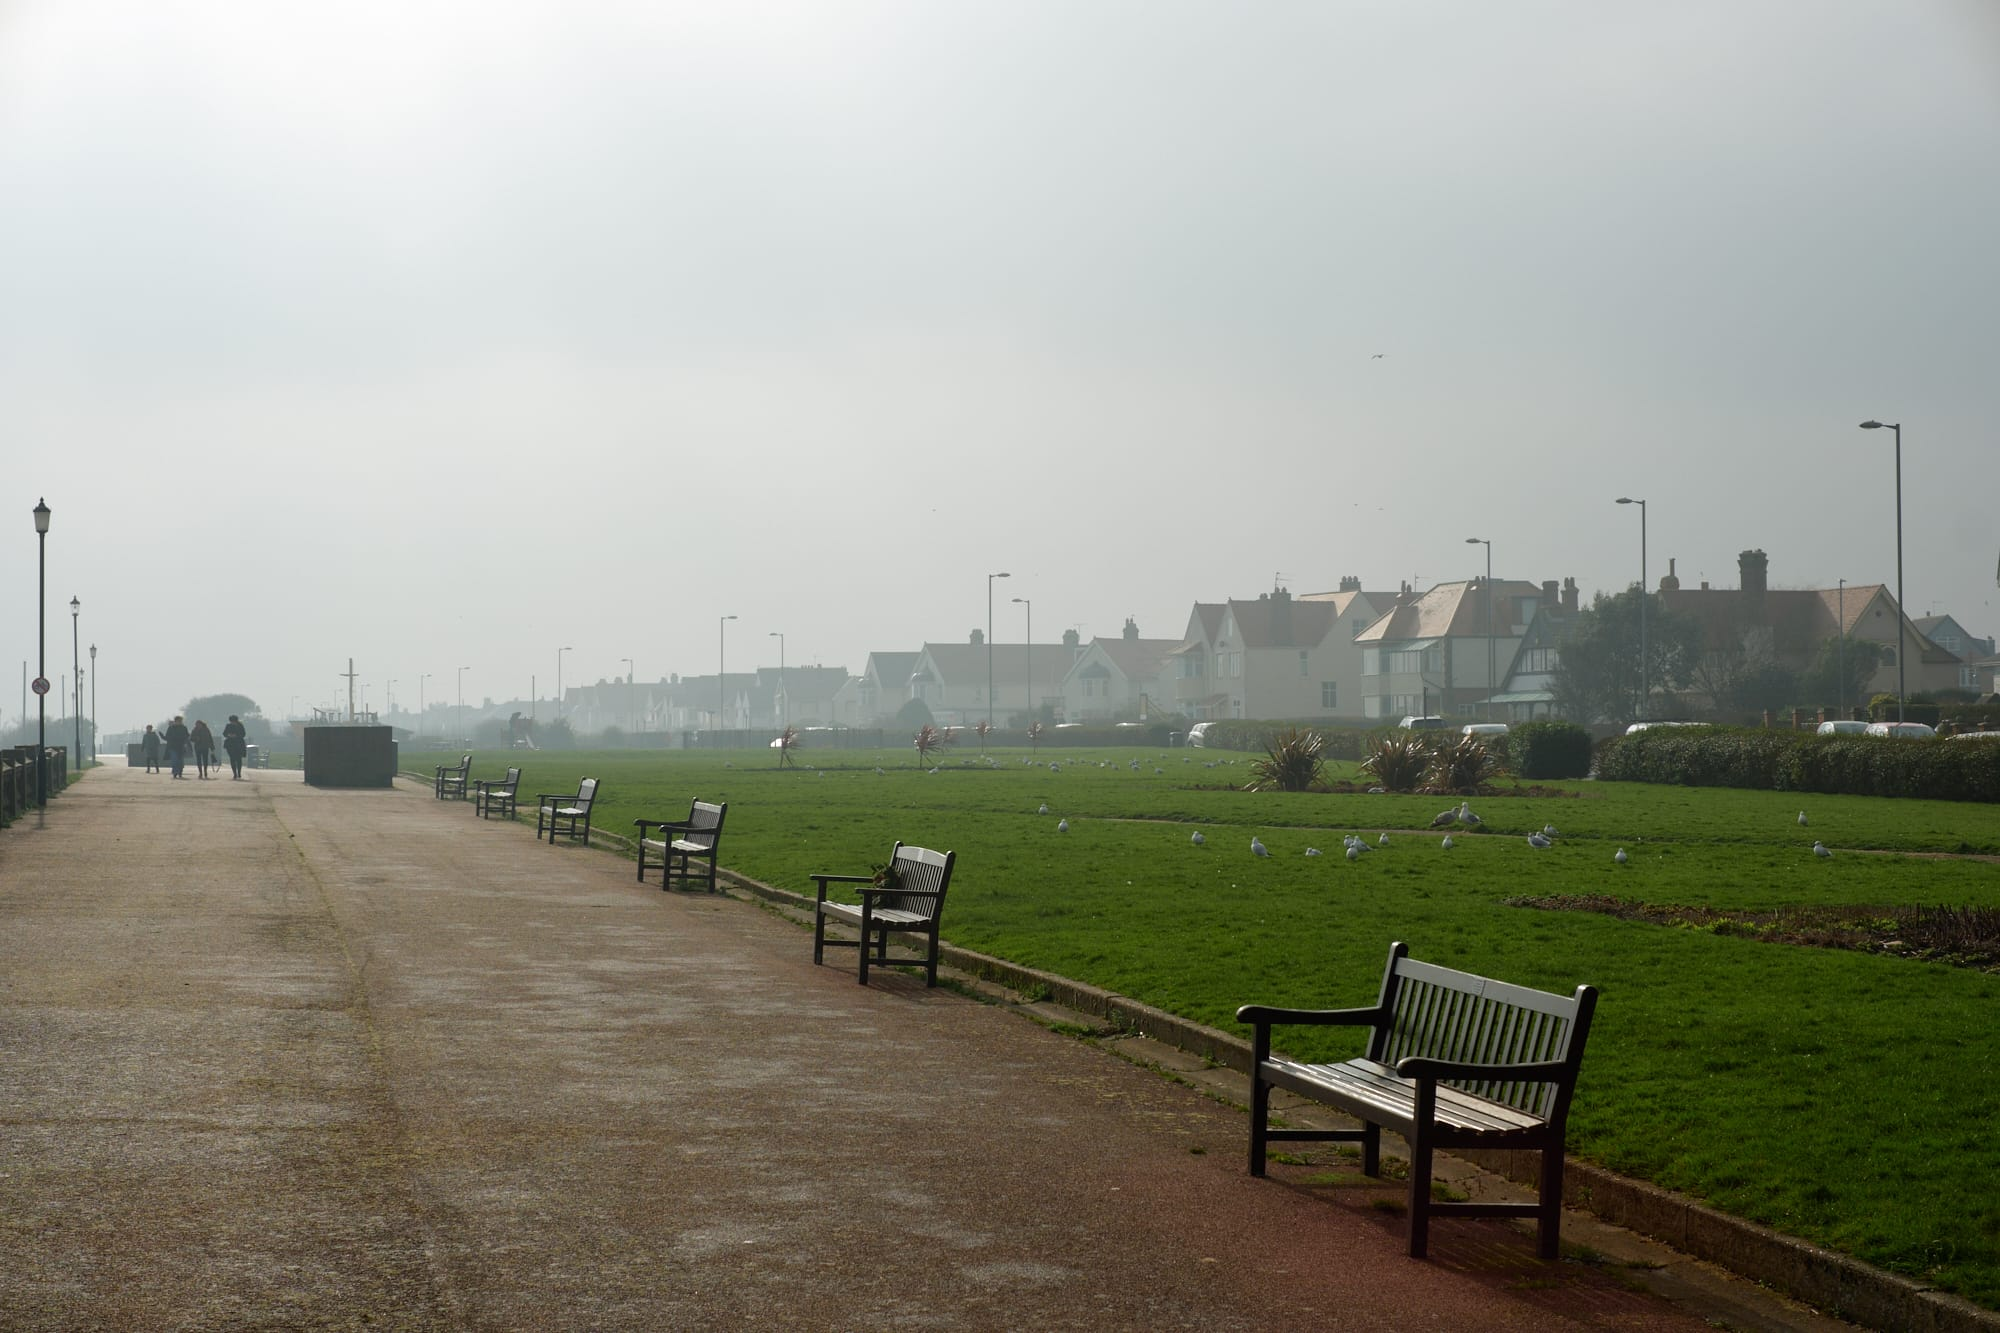 row of benches along the promenade